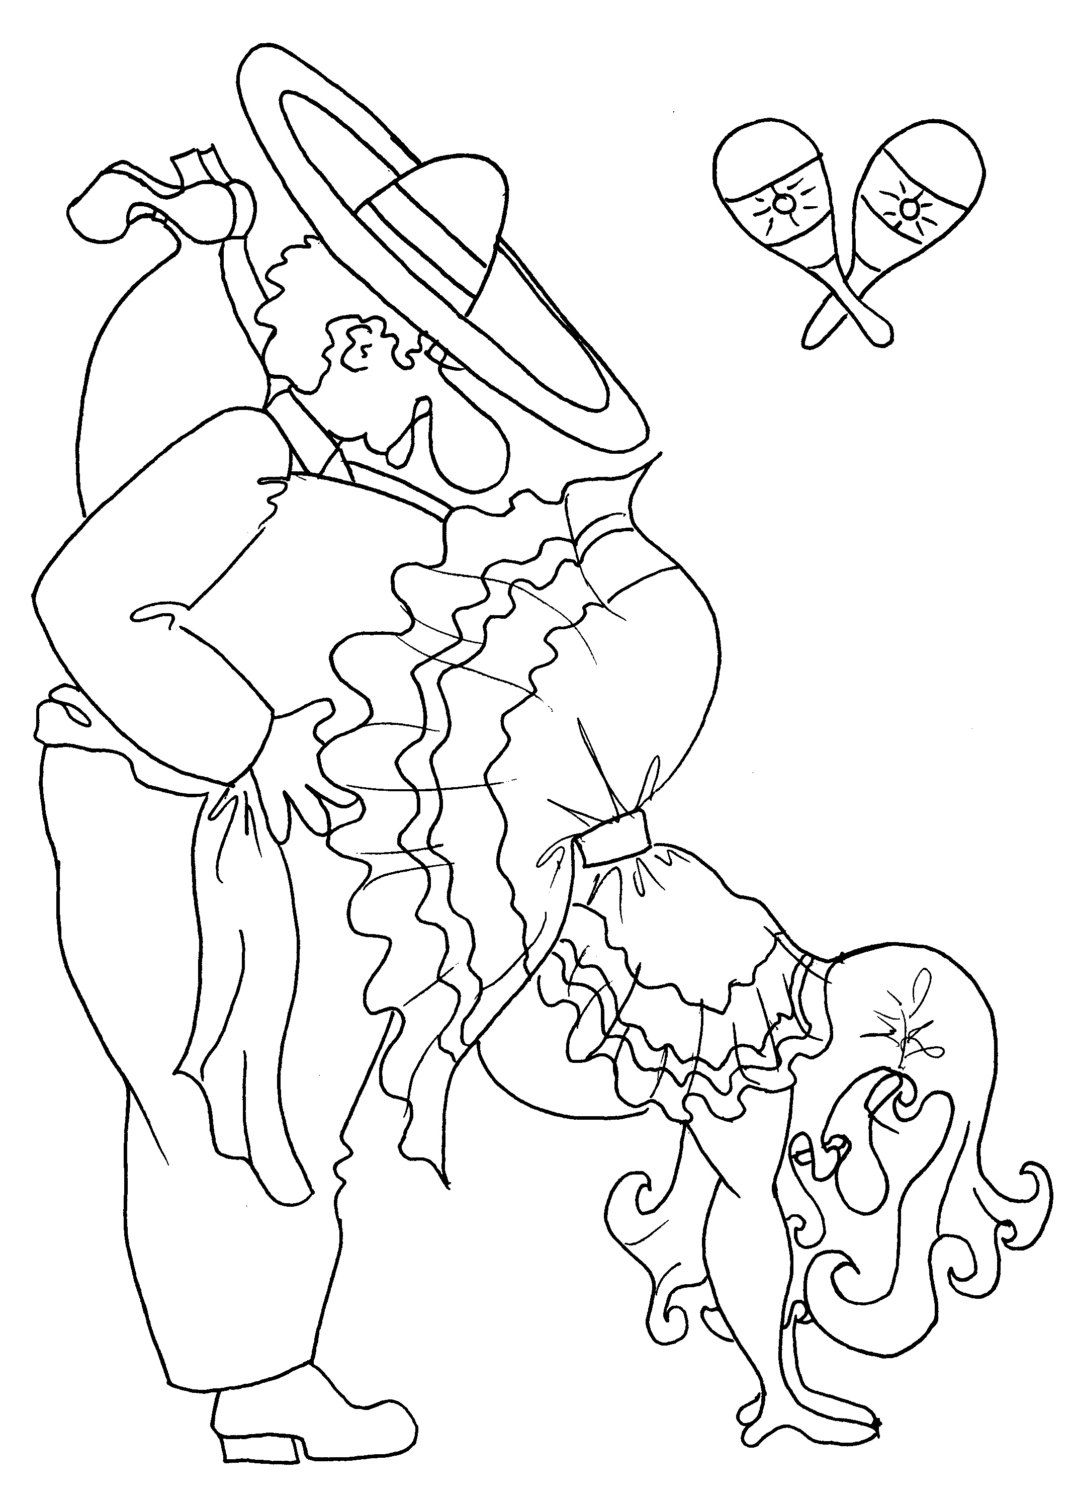 the indian headstand kama sutra sexy coloring pages from the chubby art cartoon colouring book for sex maniacs two 50 more kama sutra poses